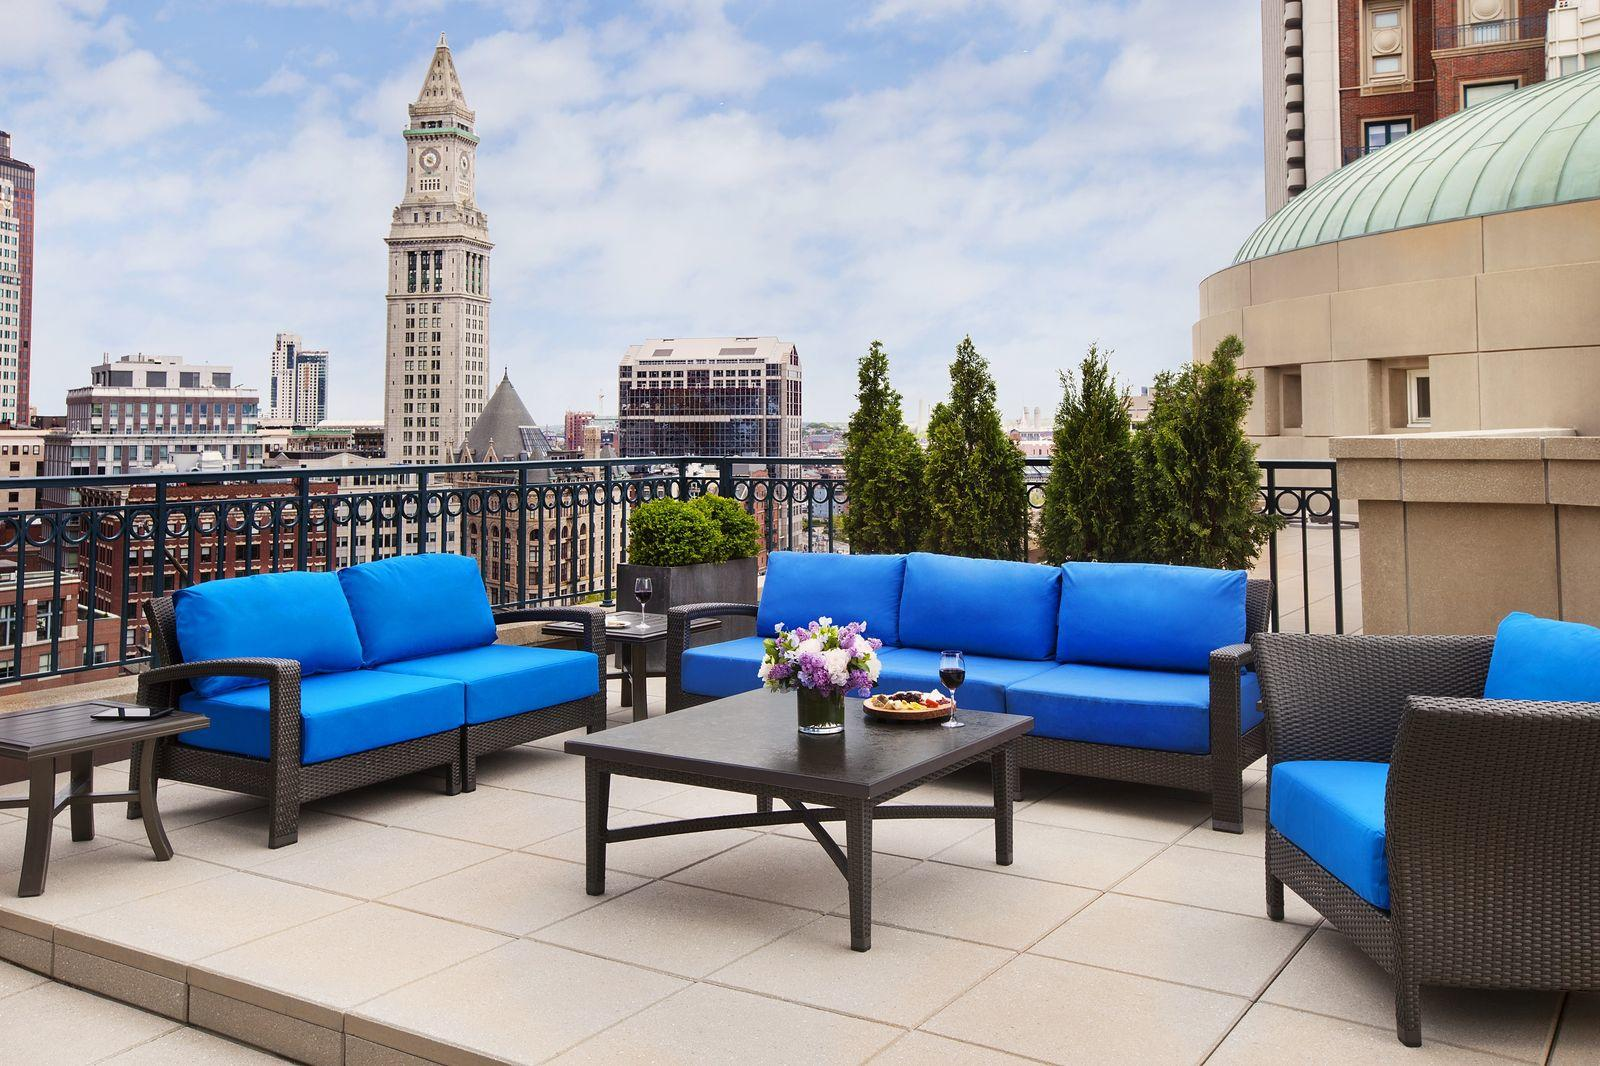 Hotel suite balcony with Boston skyline view